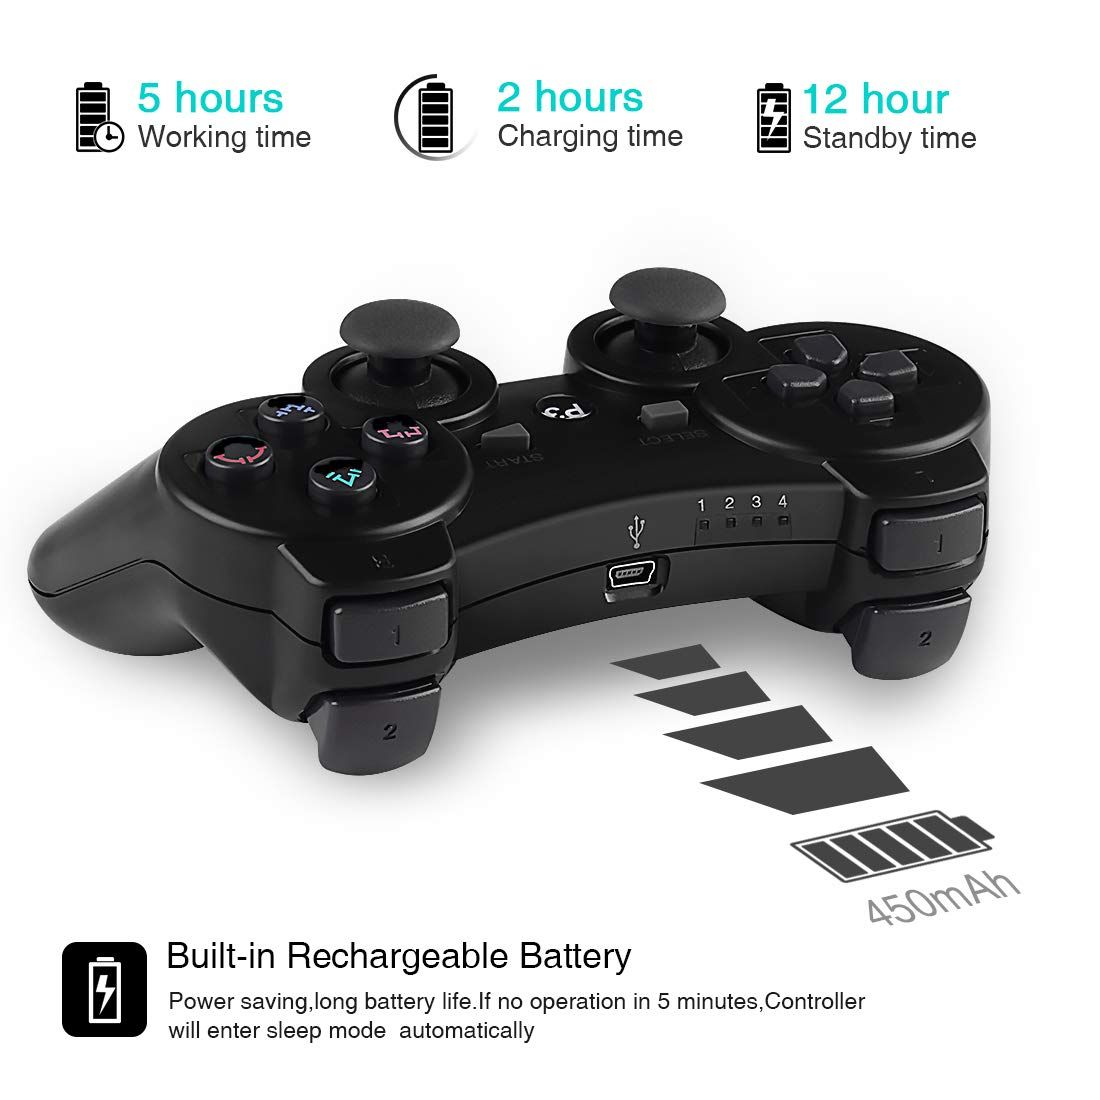 Kolopc 2 Packs Wireless Controller Gamepad Remote For Ps3 Playstation 3 Double Shock Bundled With Usb Charge Cord Black Wireless Controller Wireless Control